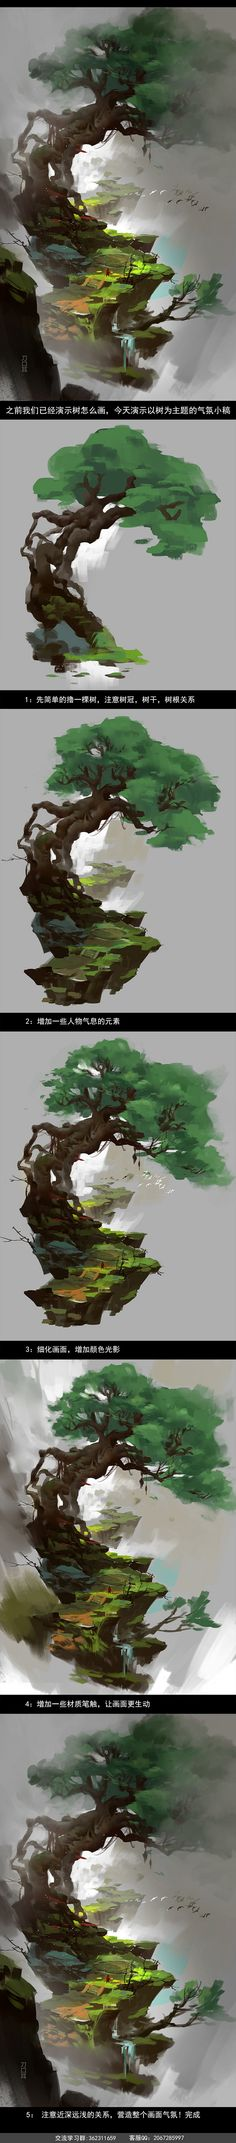 Drawing a tree. But it's more than a tree. Drawing a trail.